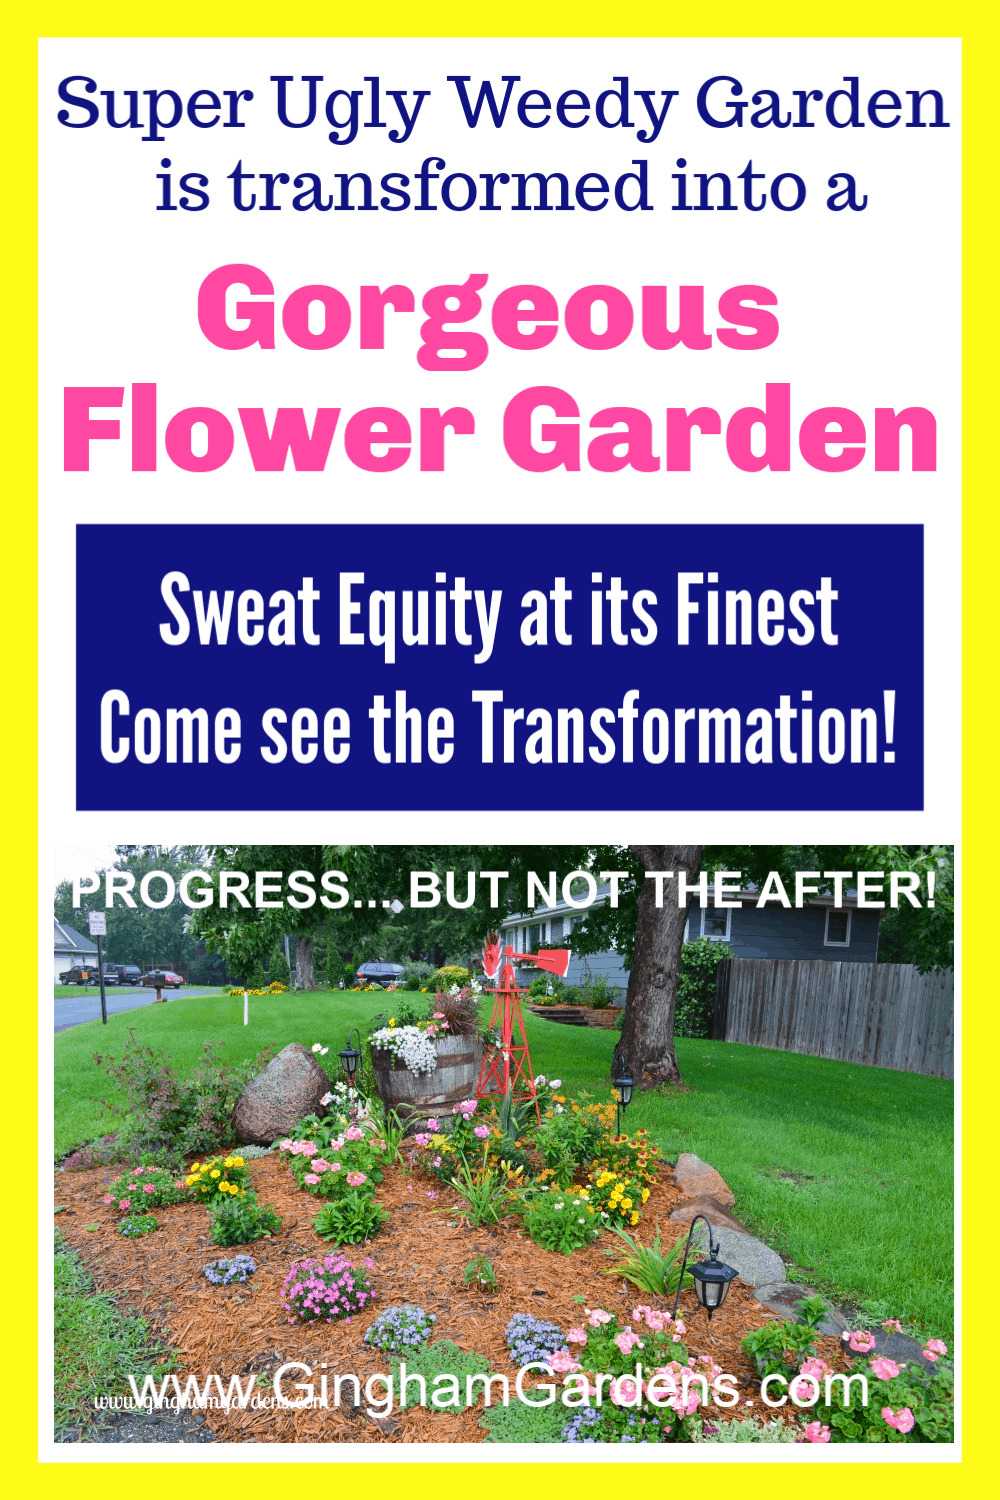 Image of a flower garden with text overlay ugly weedy garden gets transformed into a Pretty Flower Garden...